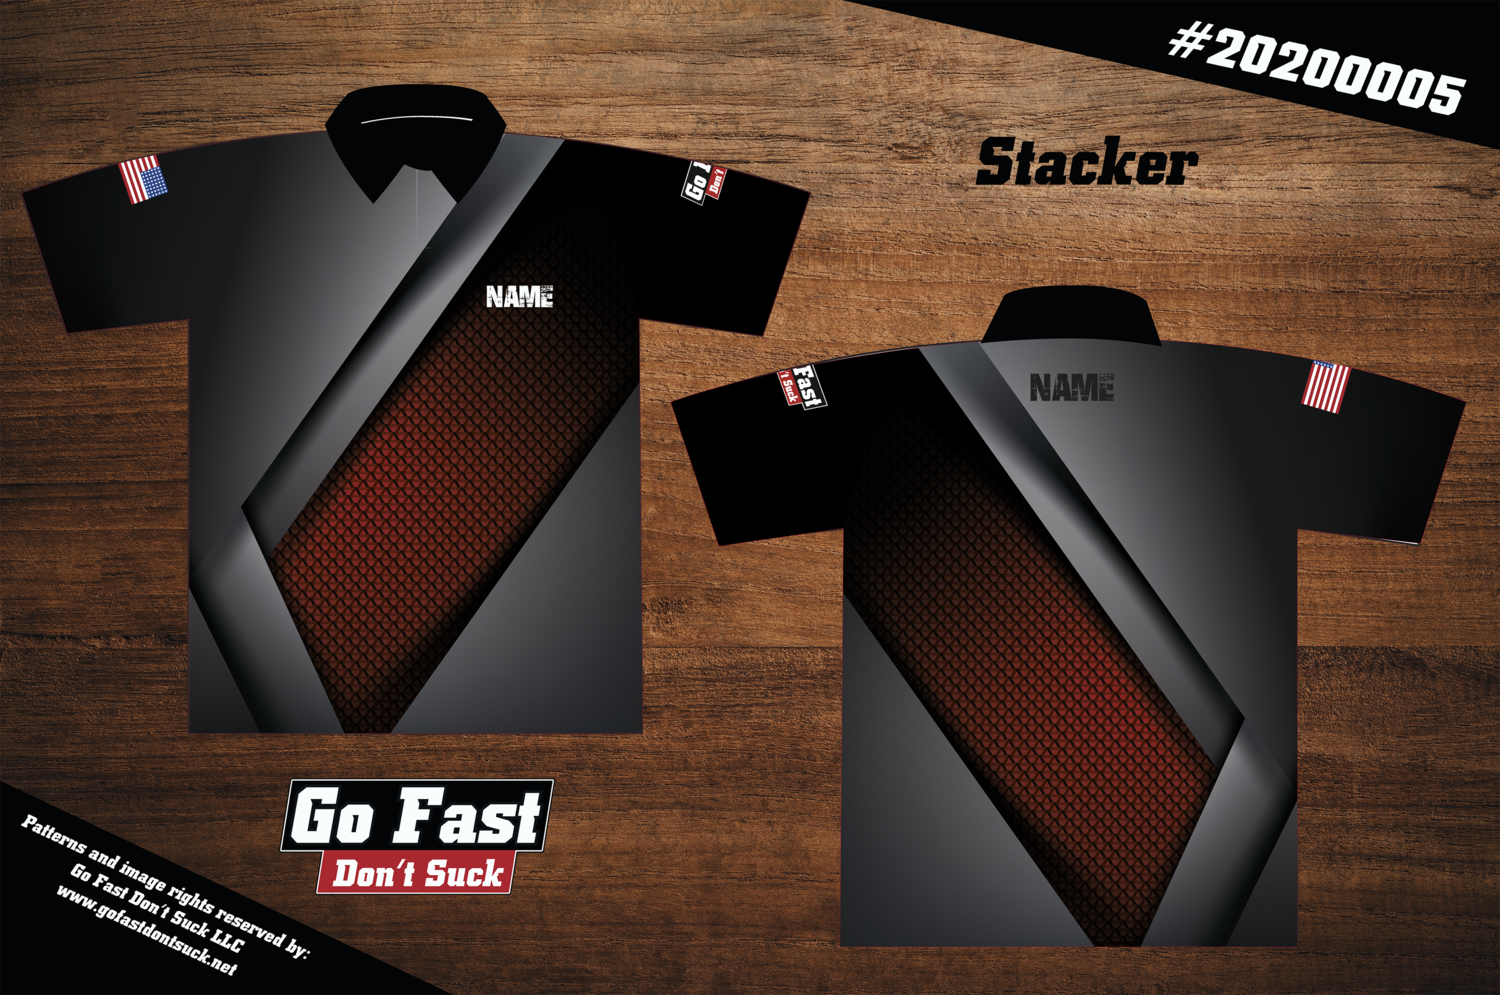 Stacker - Polo Jersey